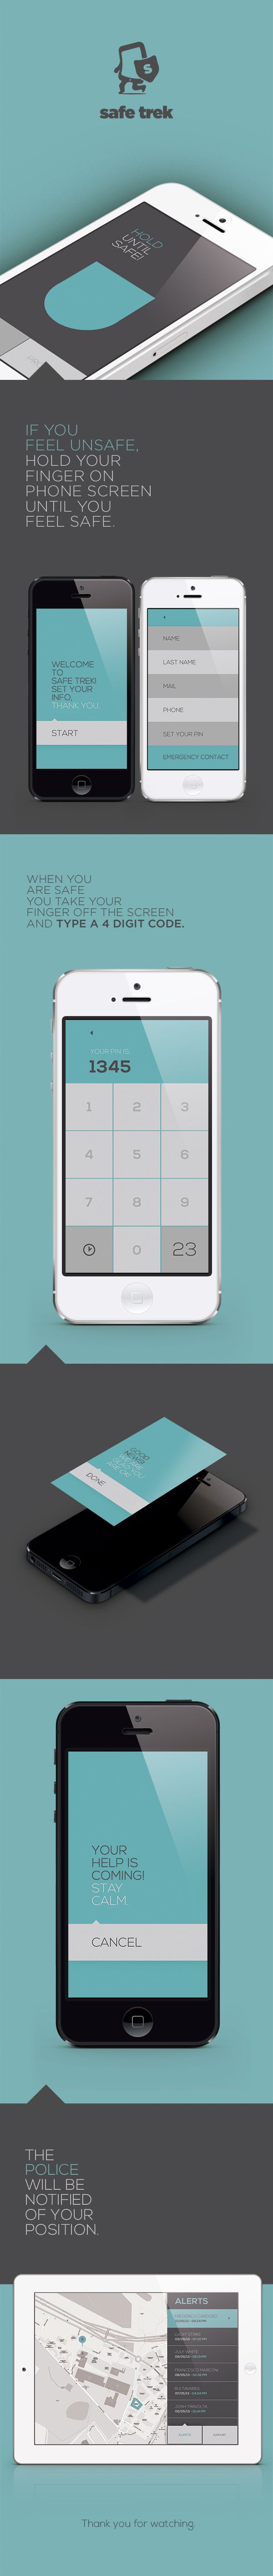 Safe Trek by Frederico Cardoso, via Behance - #UI love the simplicity of it